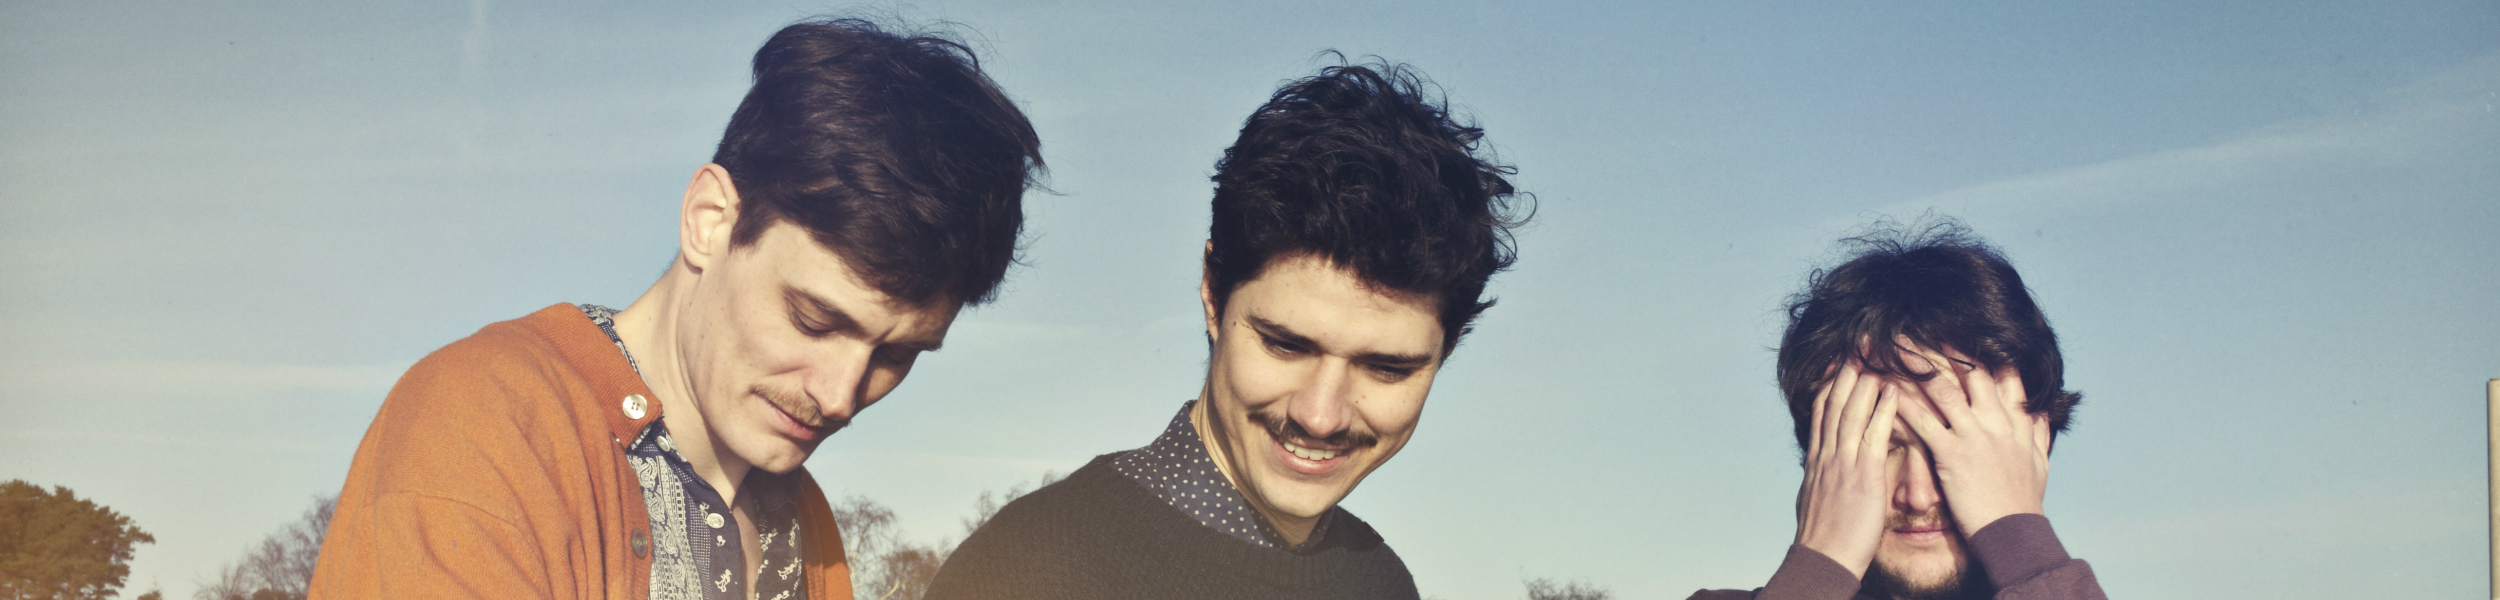 Efterklang - The Year In Review: Efterklang - Piramida